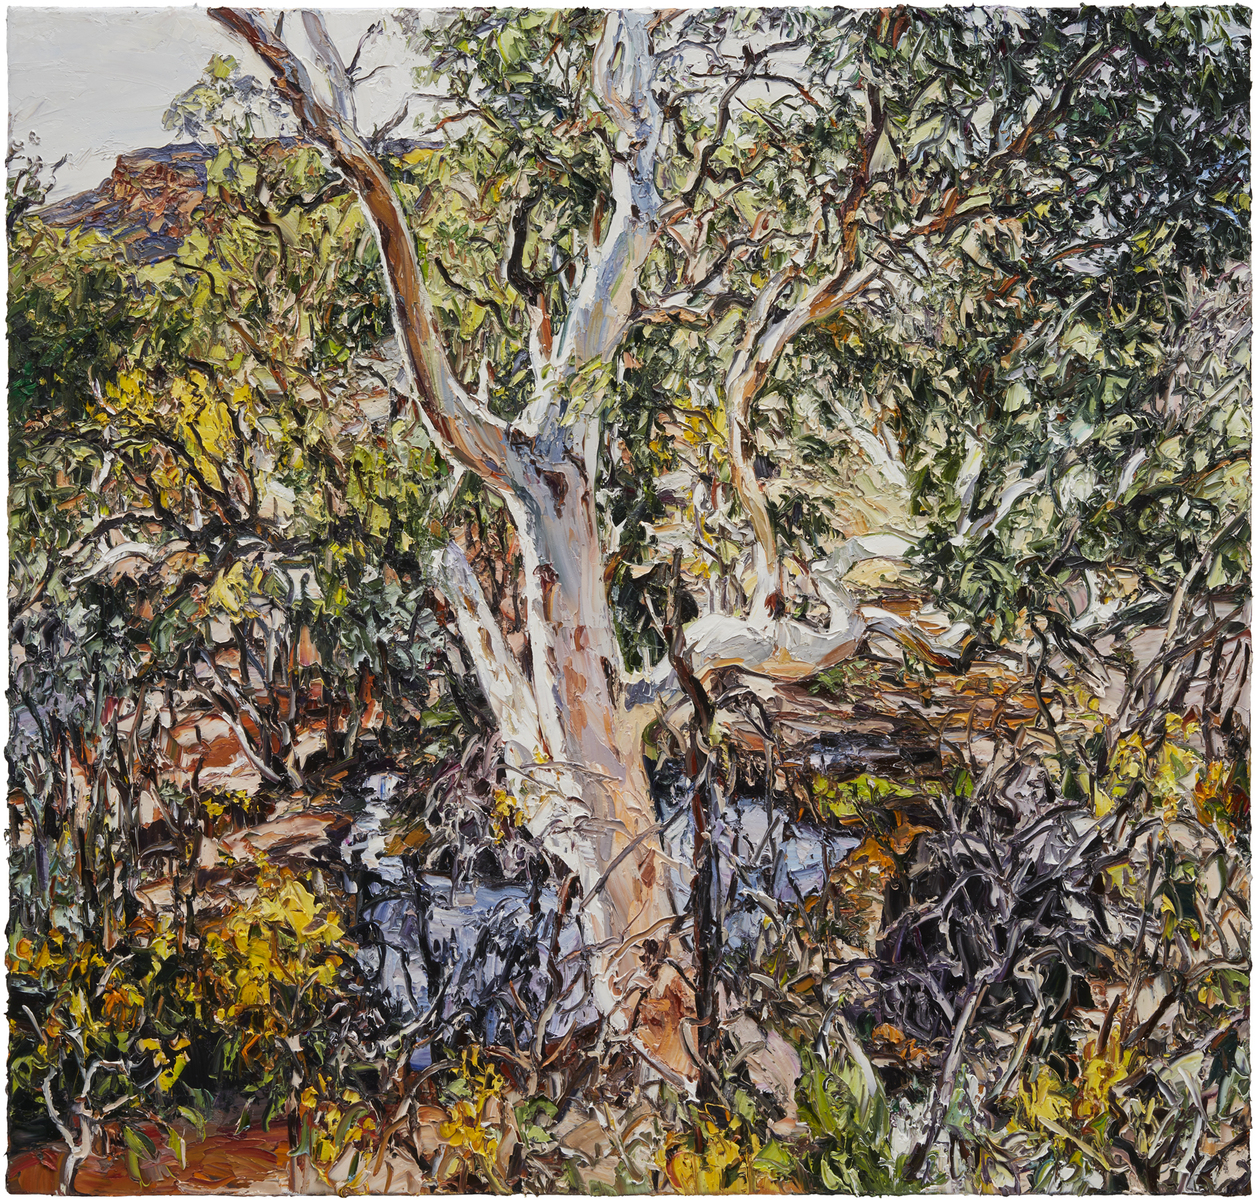 Wilpena wattle eucalypt and stream